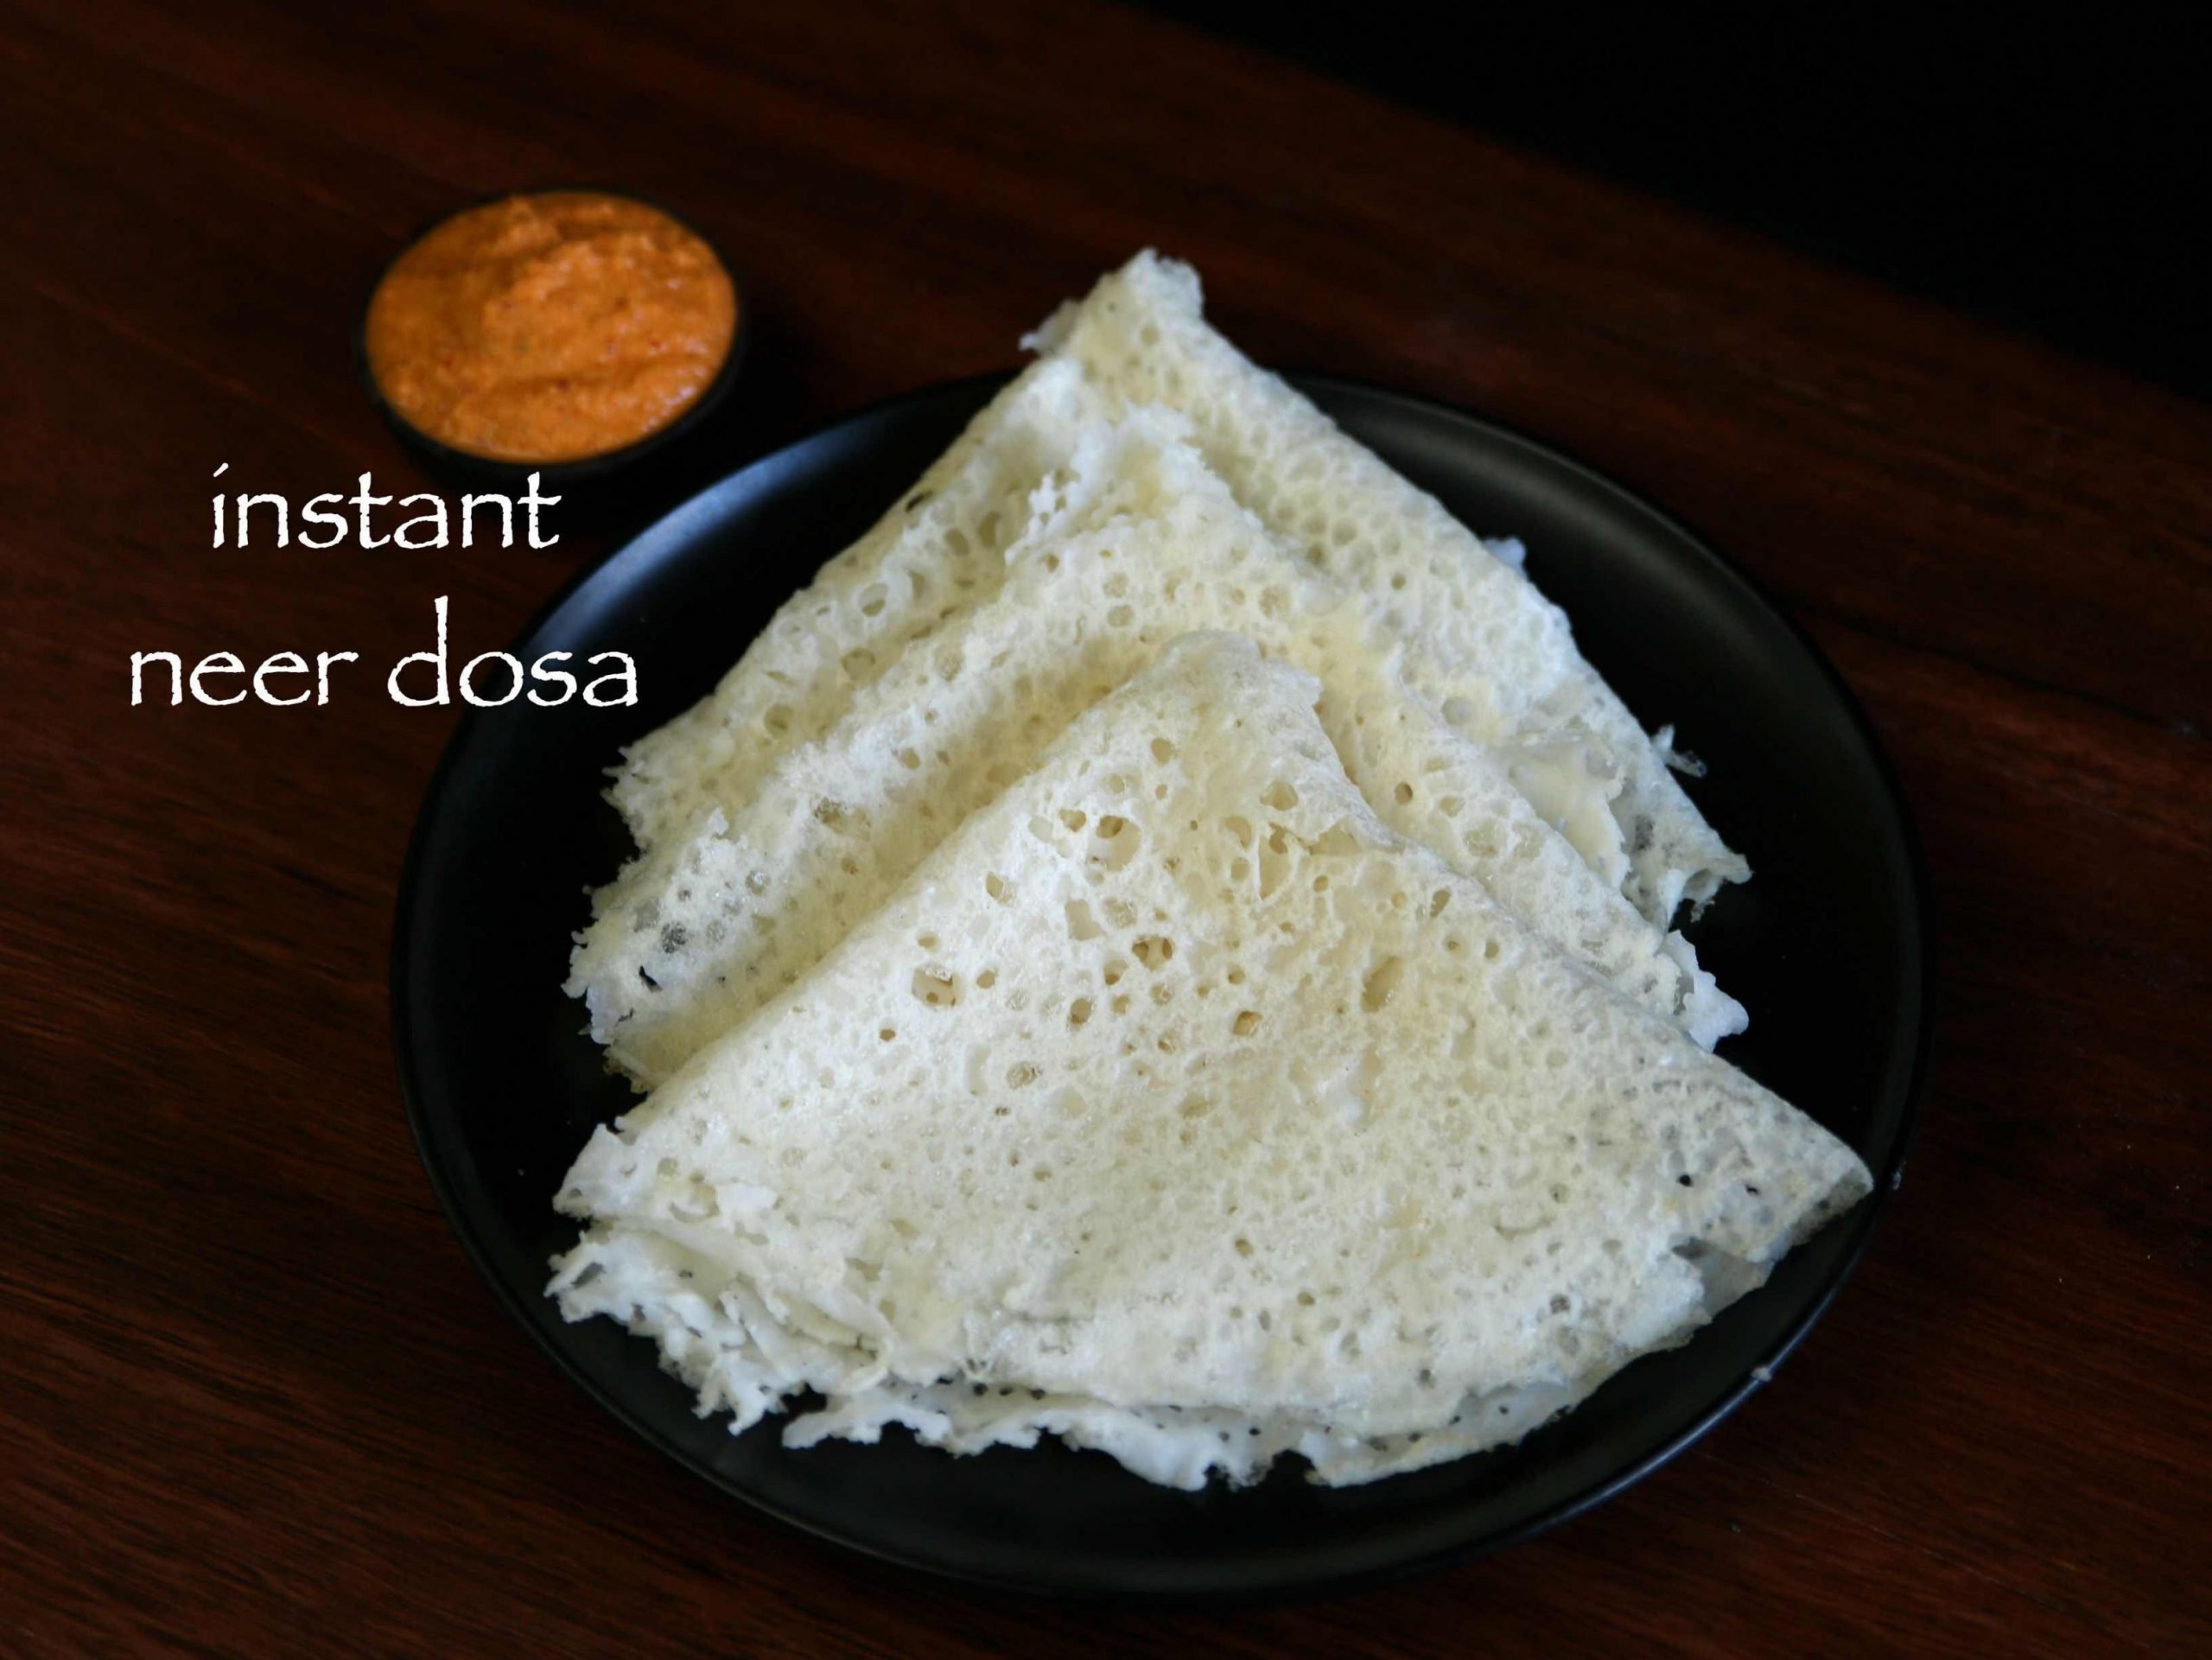 instant neer dosa recipe | neer dose recipe with rice flour - Recipes Rice Flour